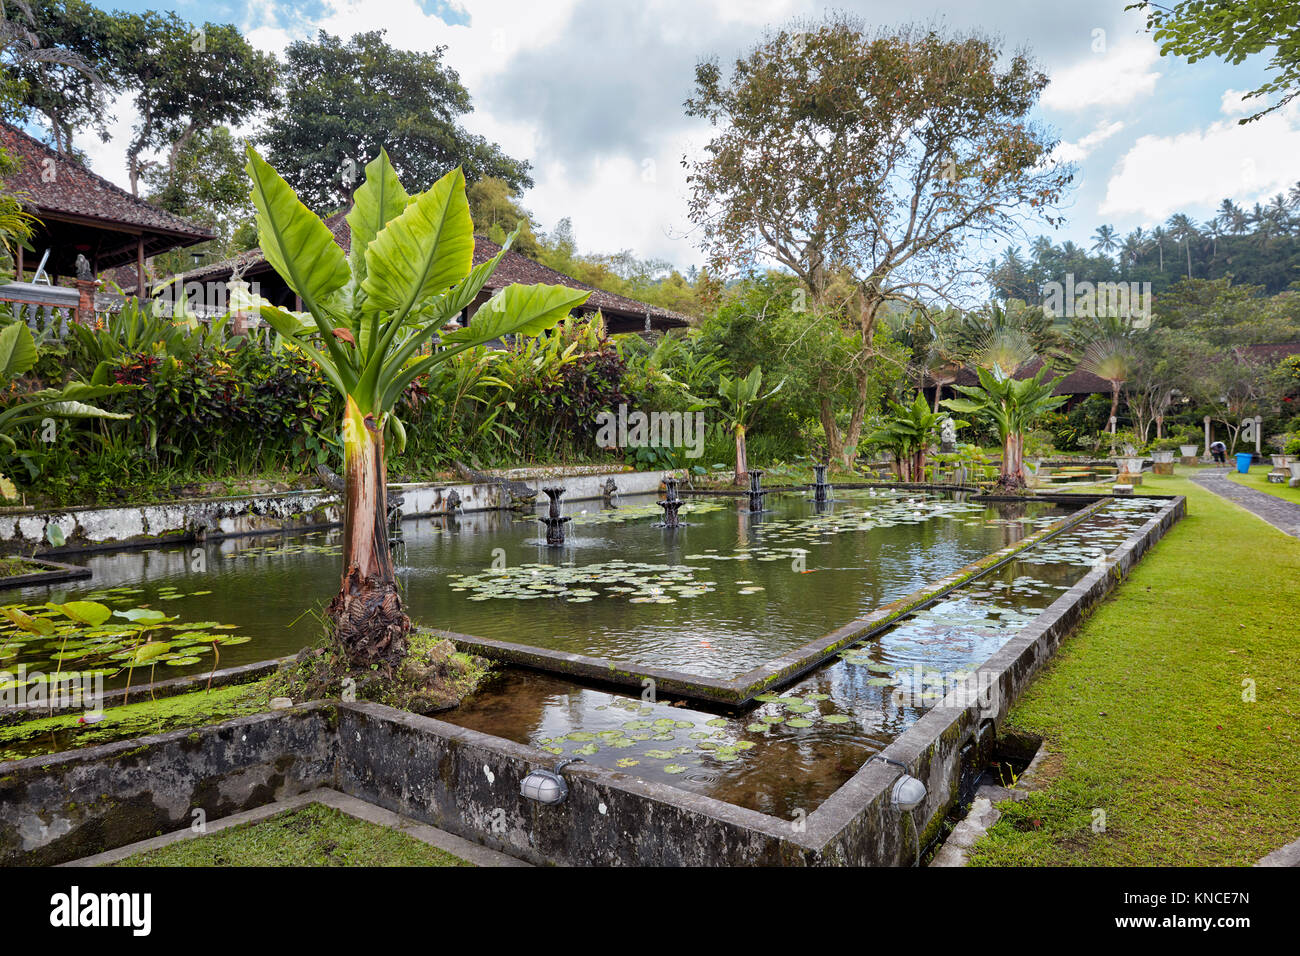 Tirta Gangga Royal Water Garden: Lush Garden With Pond Stock Photos & Lush Garden With Pond